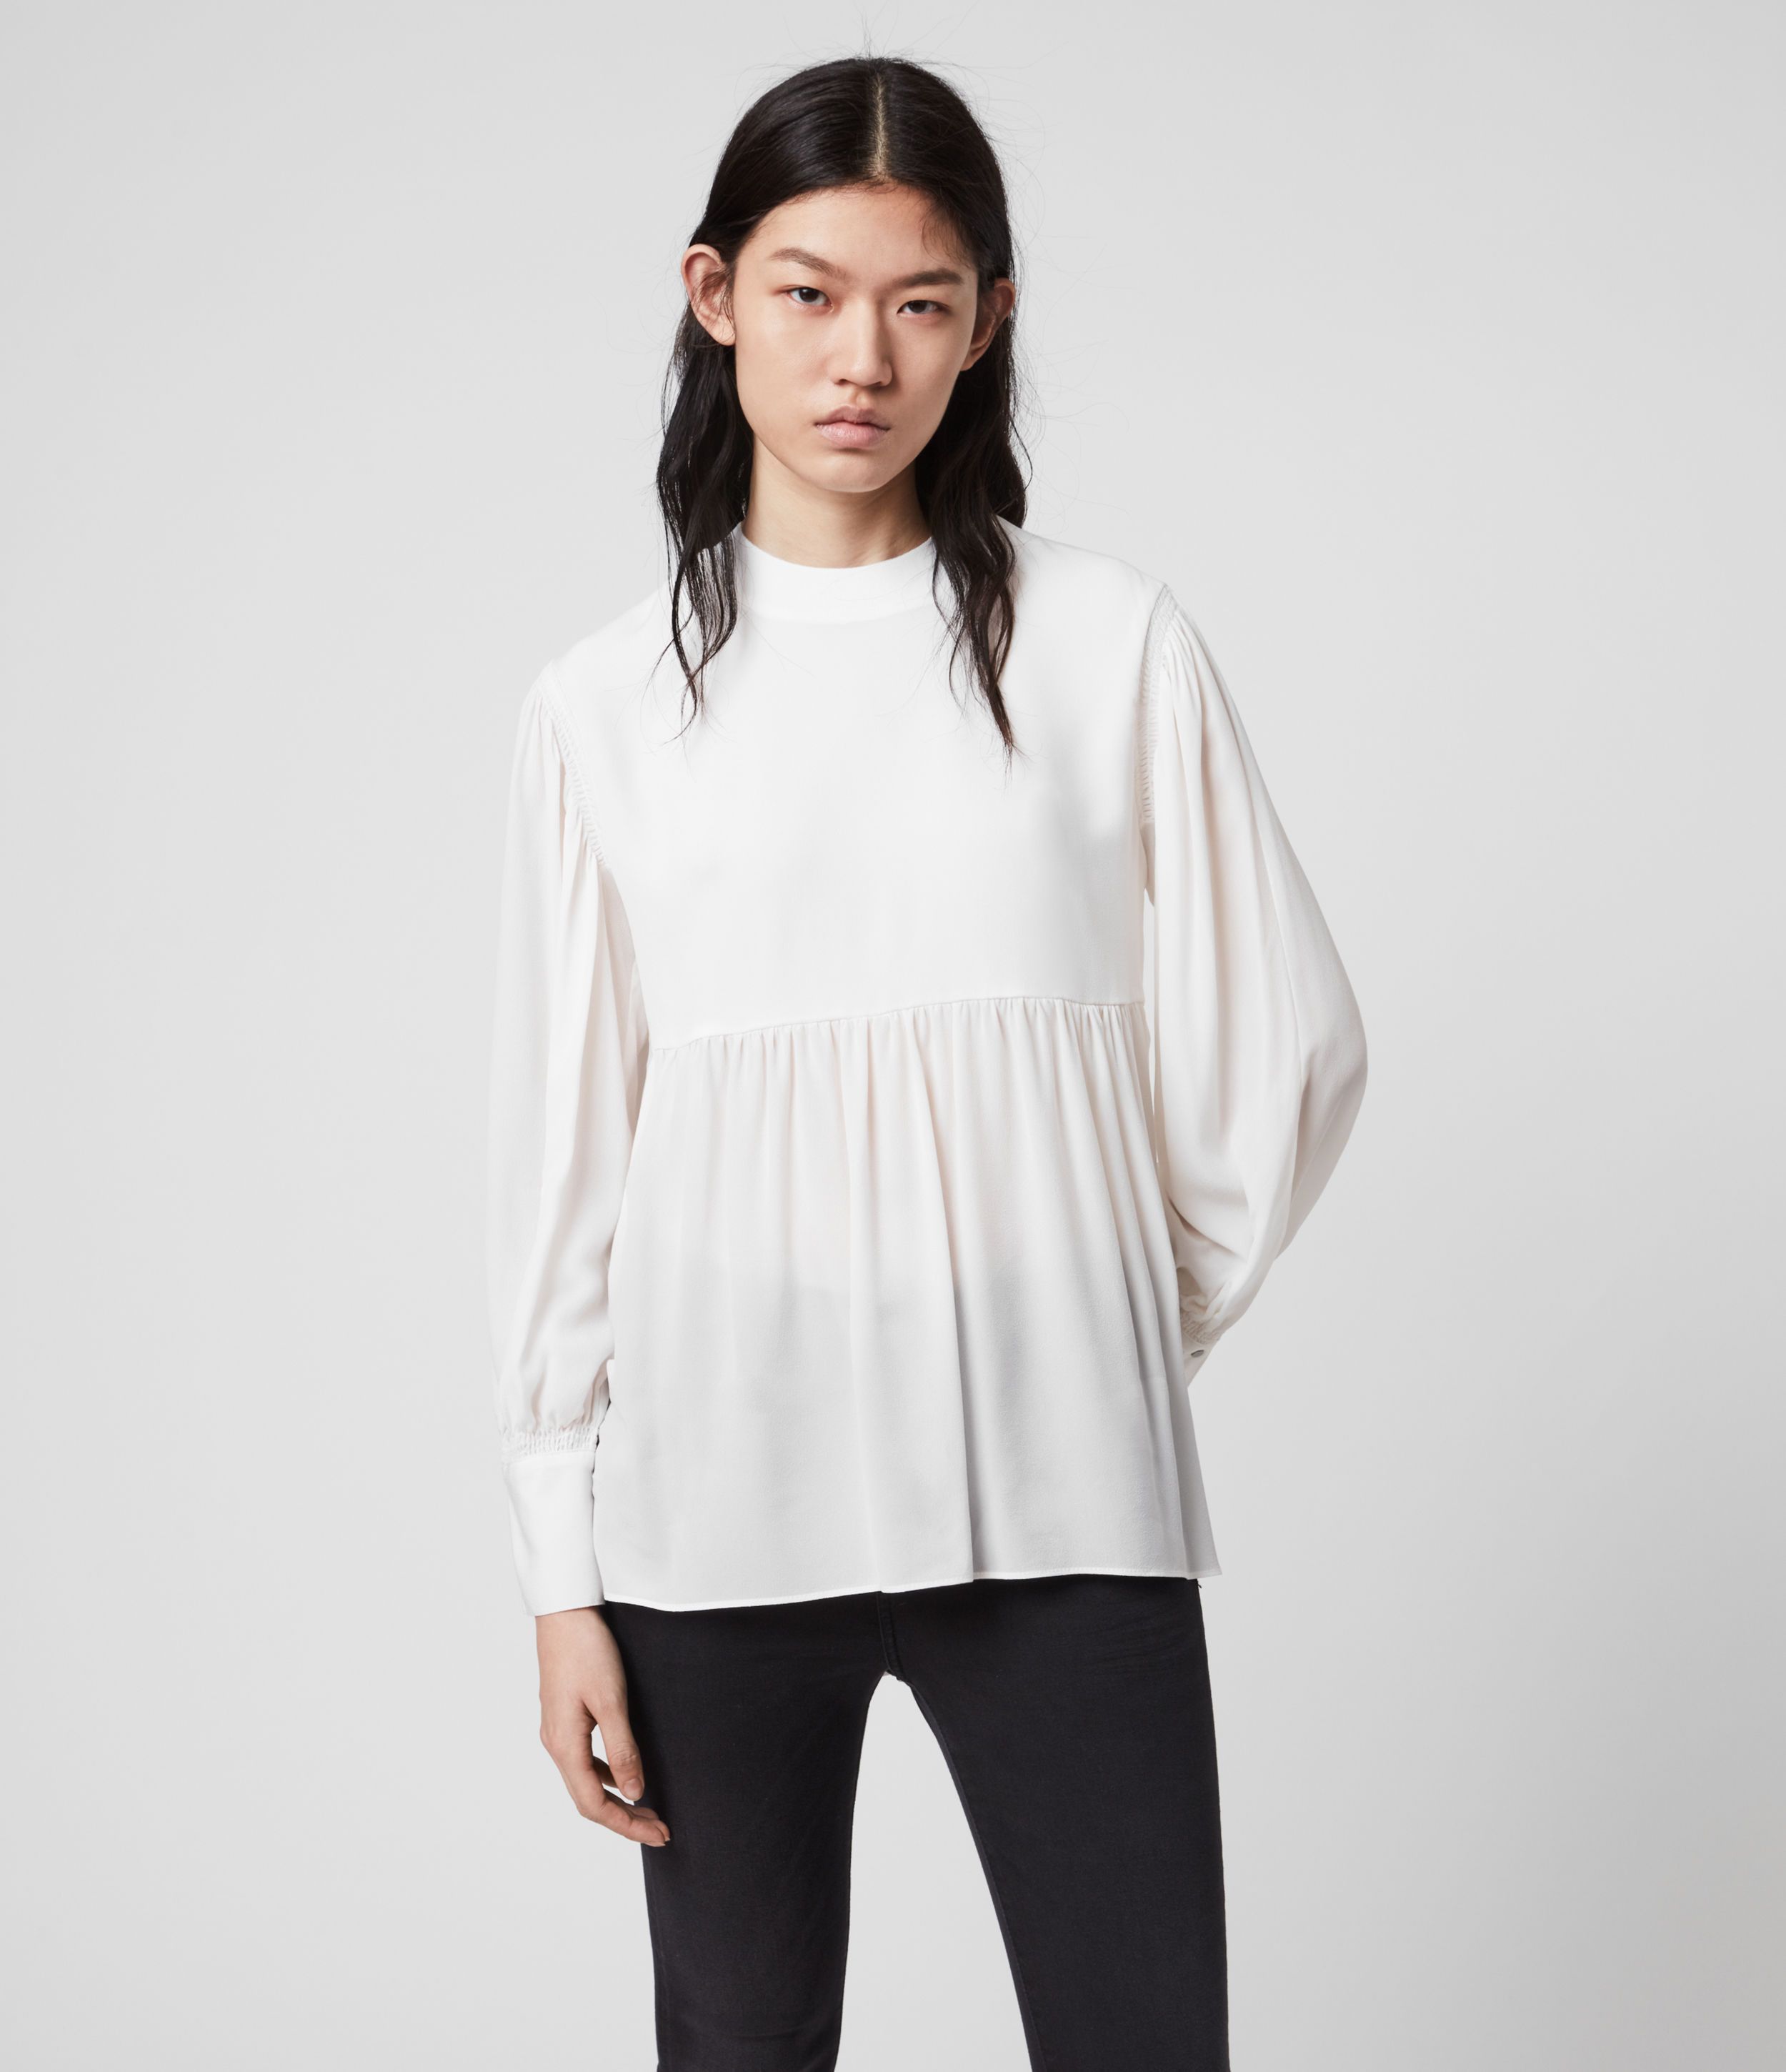 AllSaints Womens Fayre Top, White, Size: S